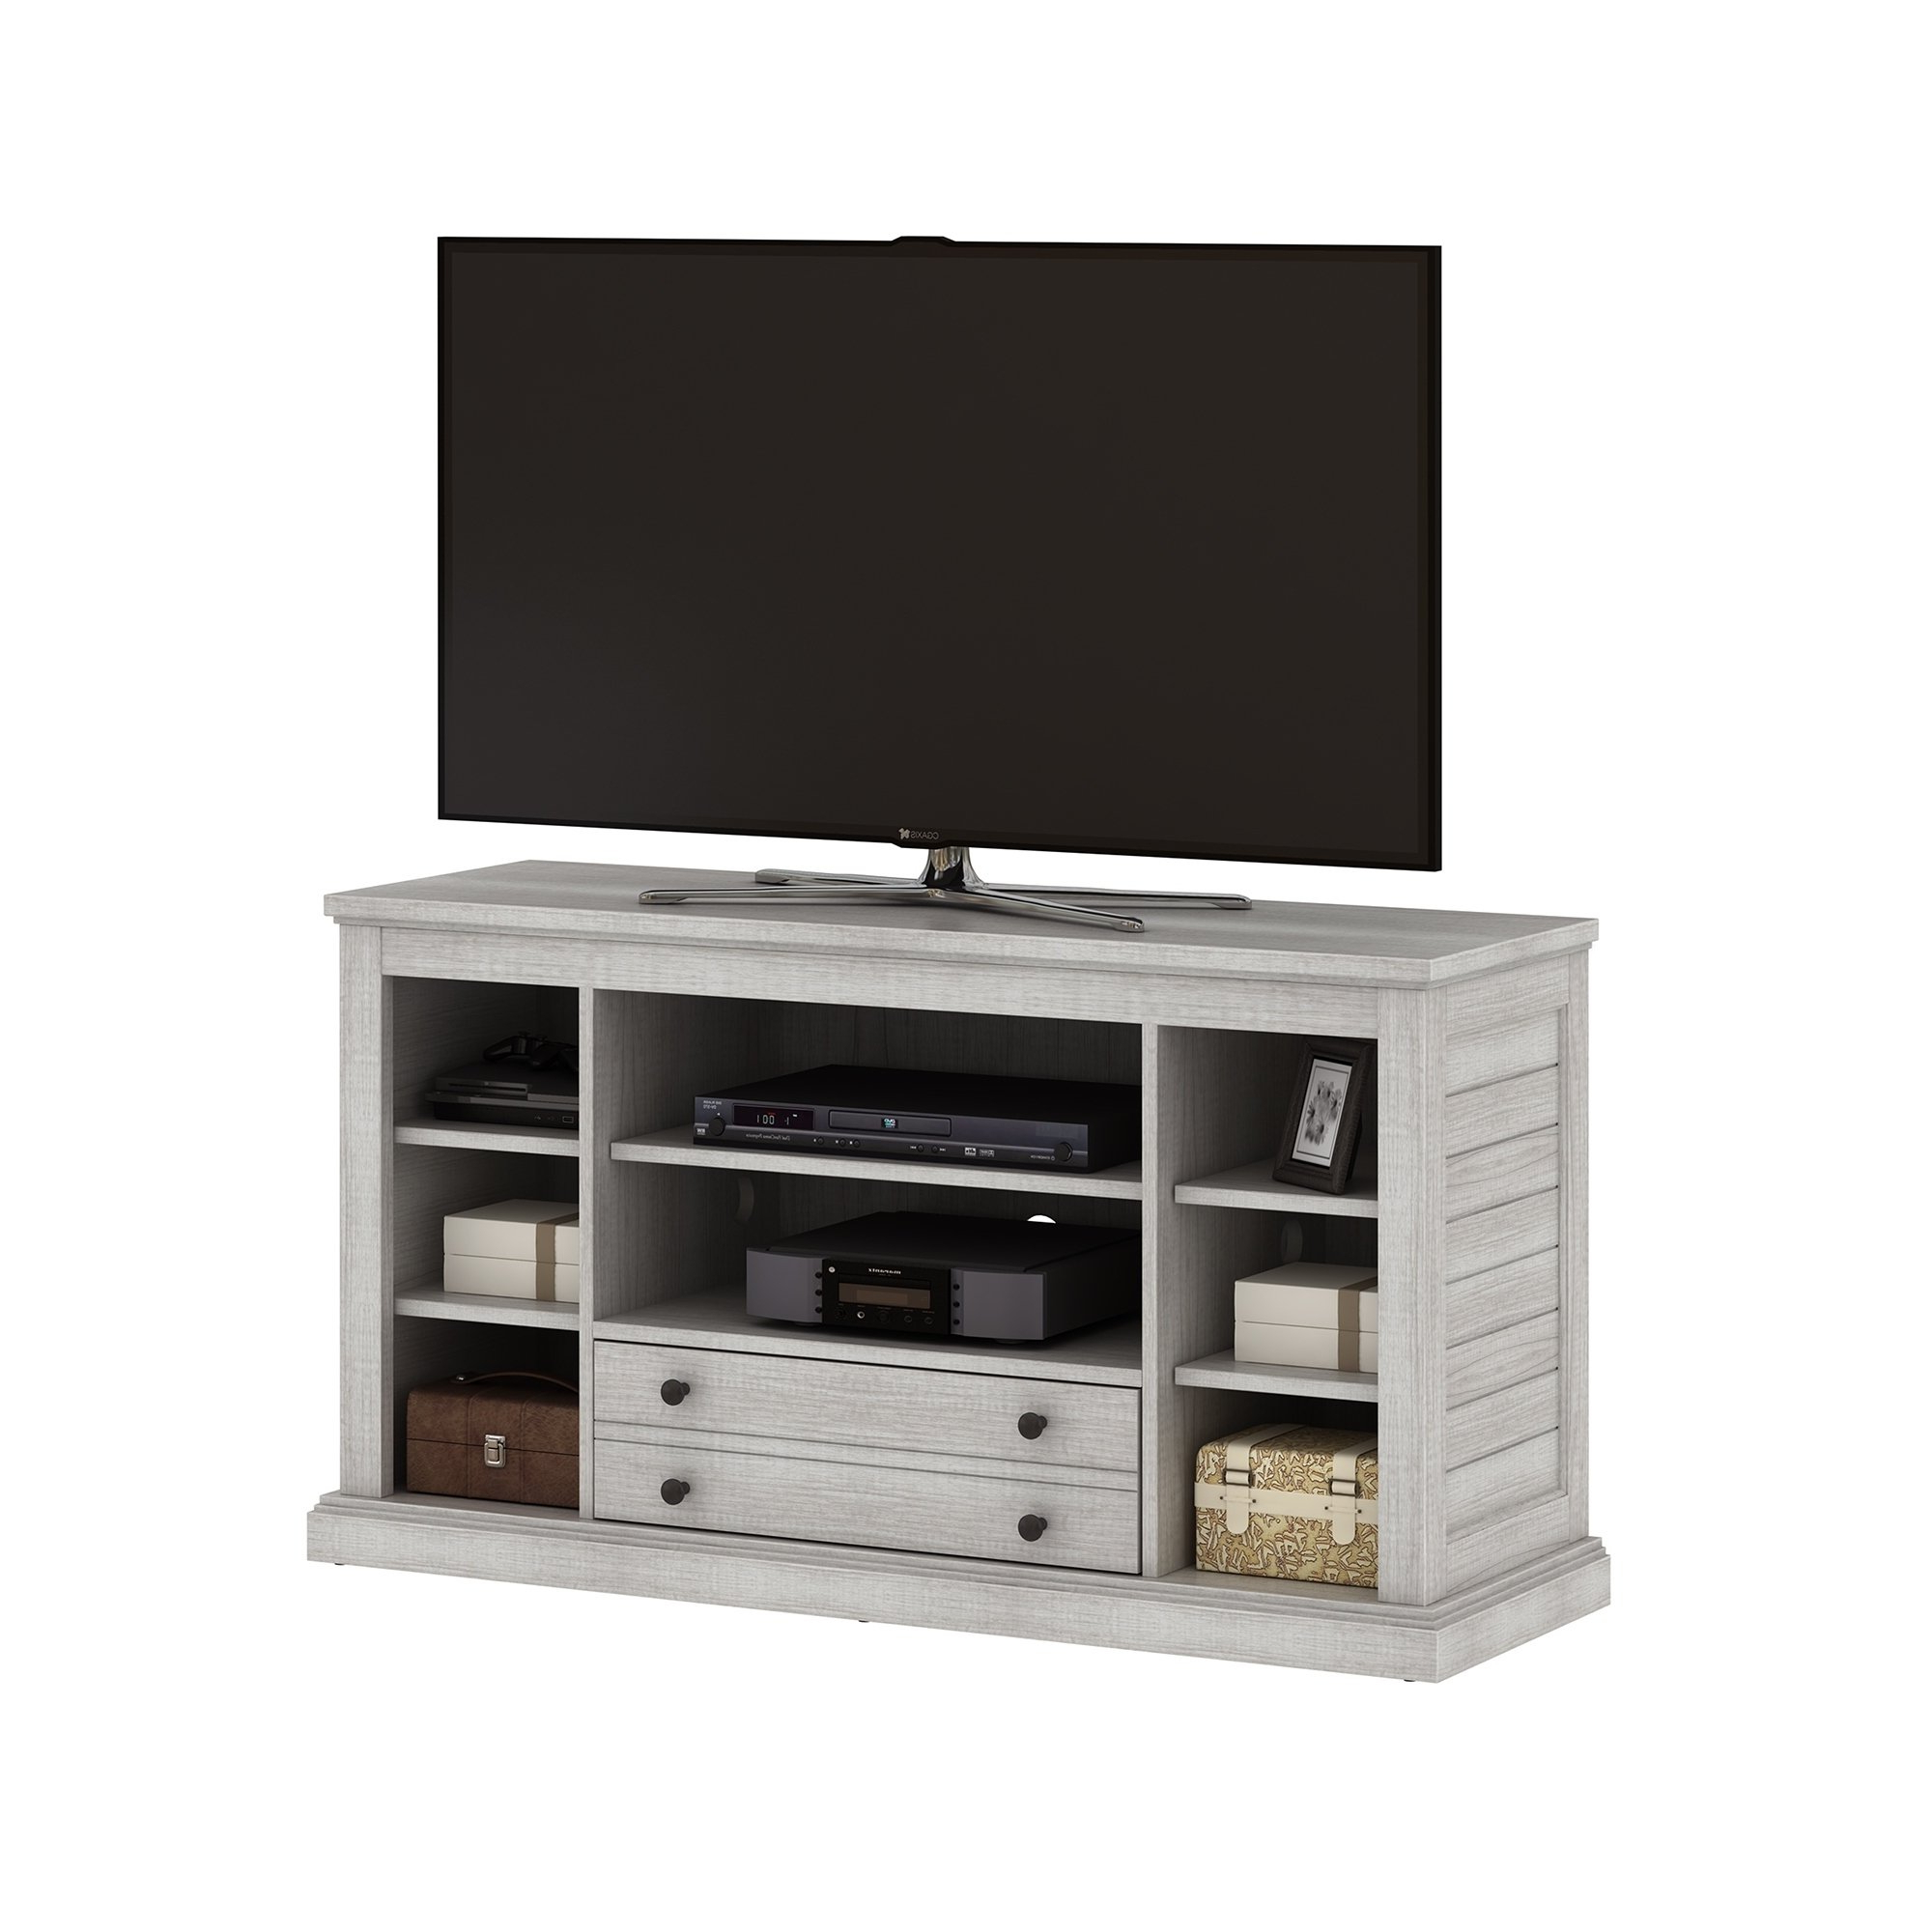 "Shop Abbott Commons Tv Stand For Tvs Up To 55"", Sargent Oak – Free Intended For Abbot 60 Inch Tv Stands (View 16 of 20)"